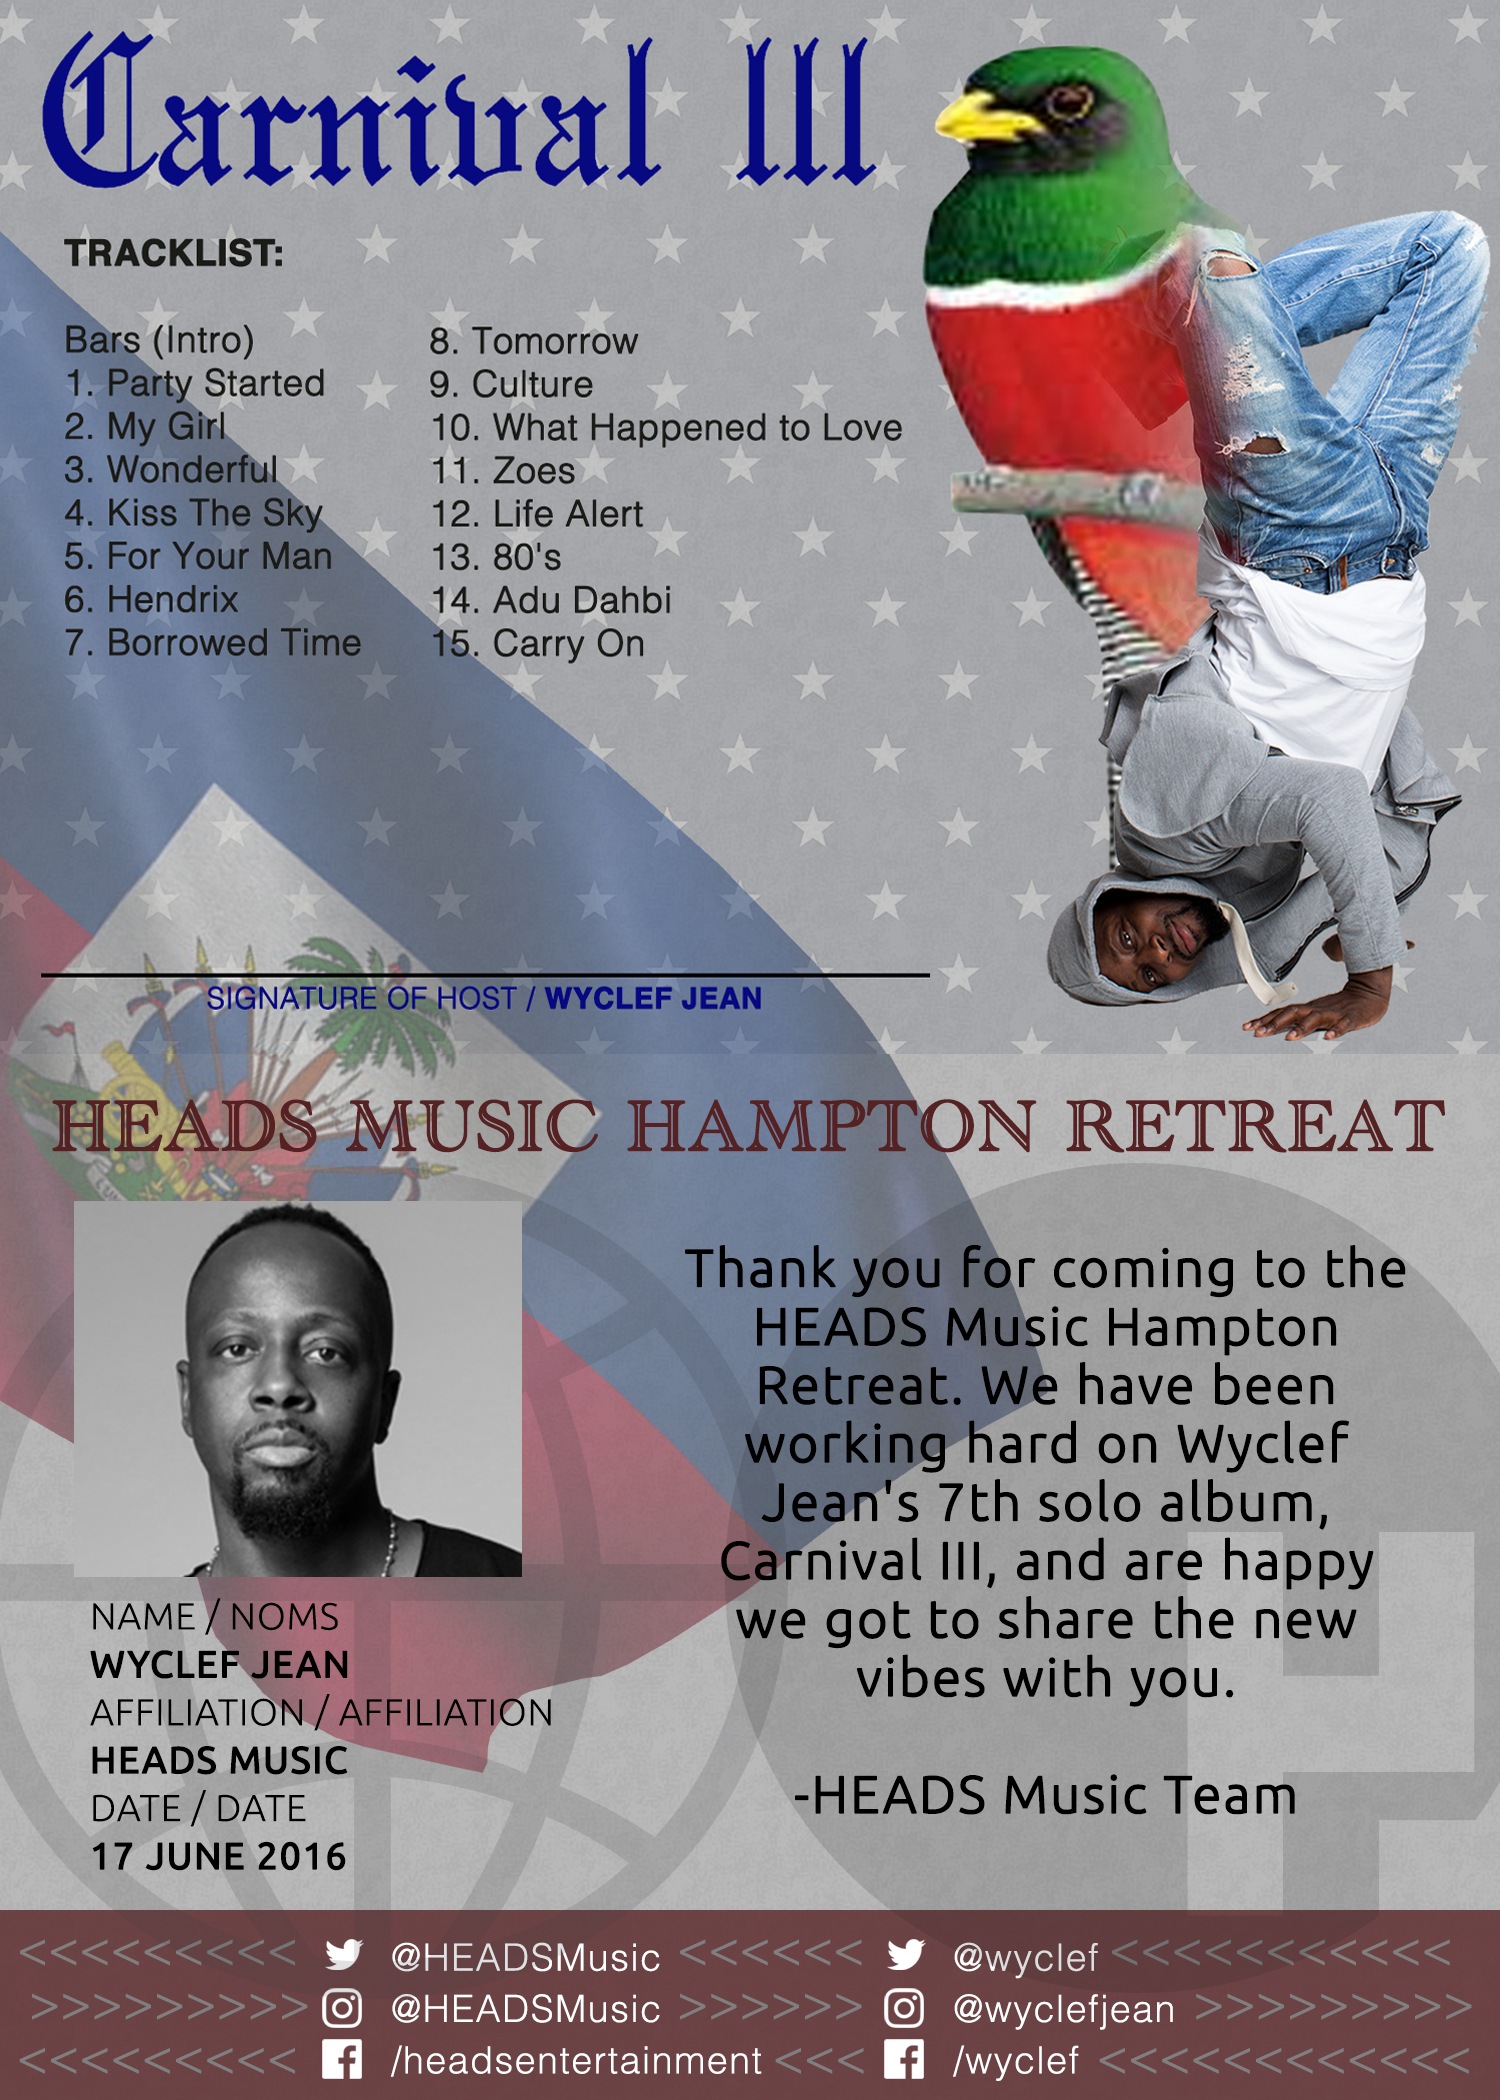 WYCLEF JEAN.png